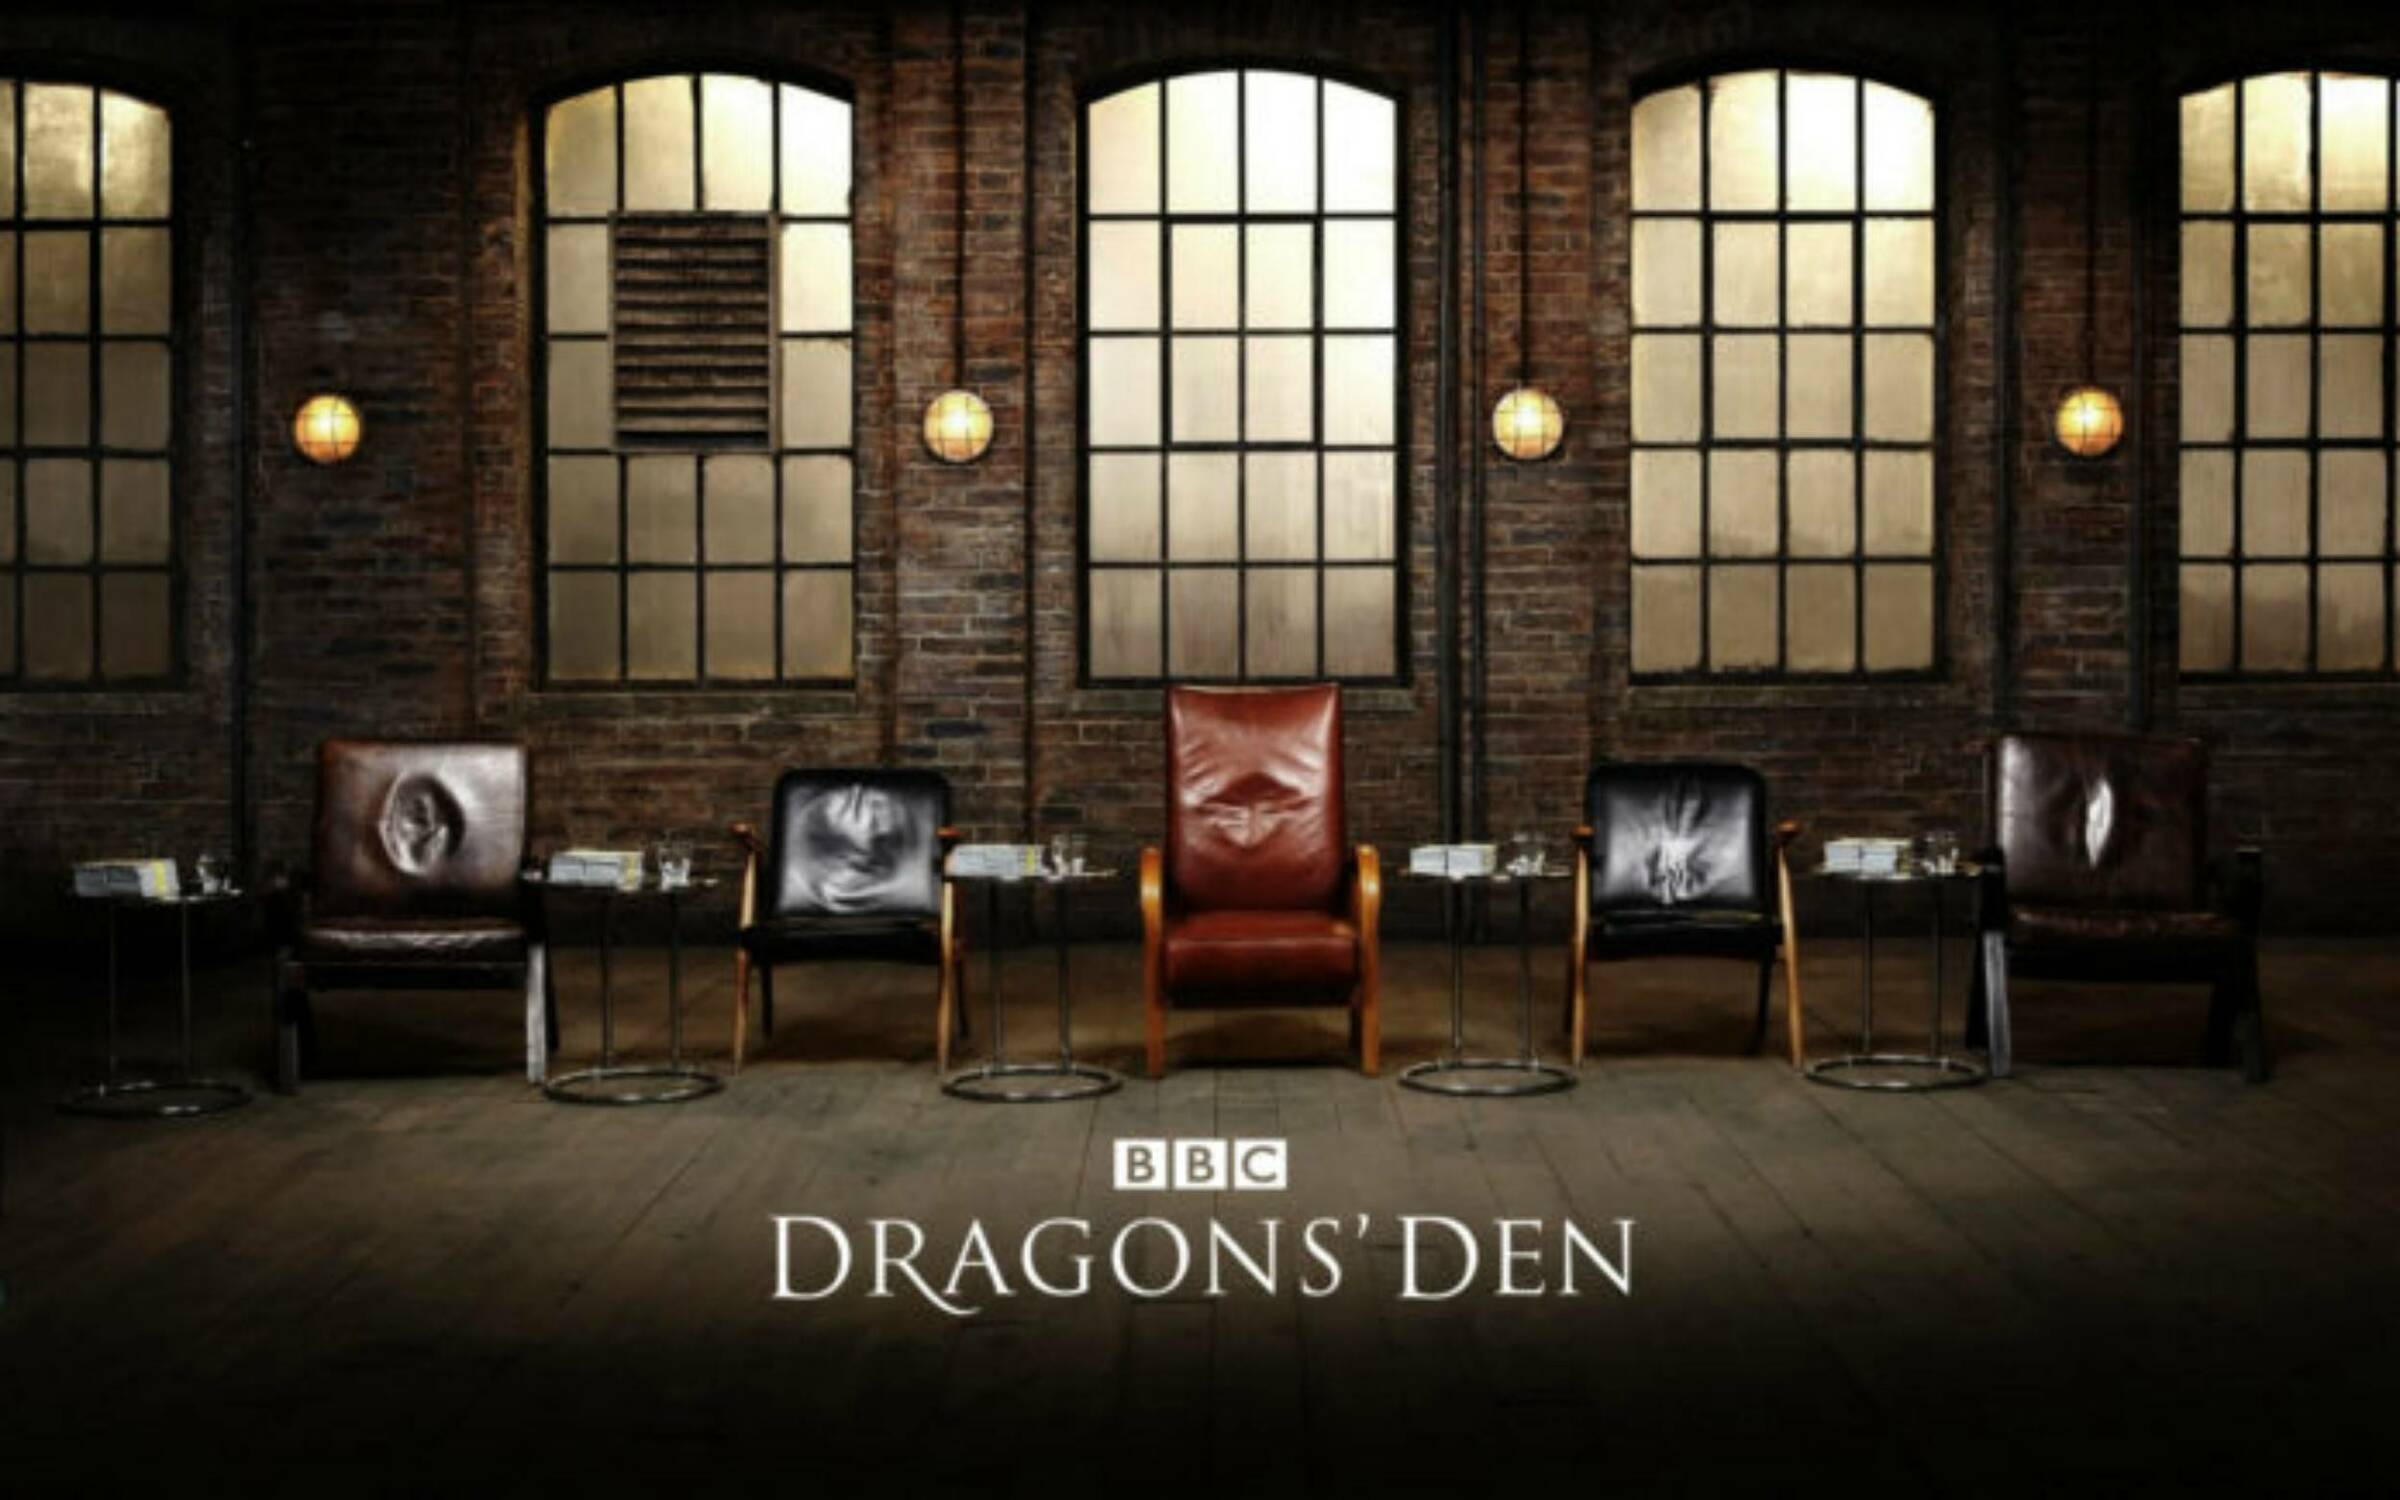 Meet The Uk Dragons Den Rejects Who Went On To Make Millions